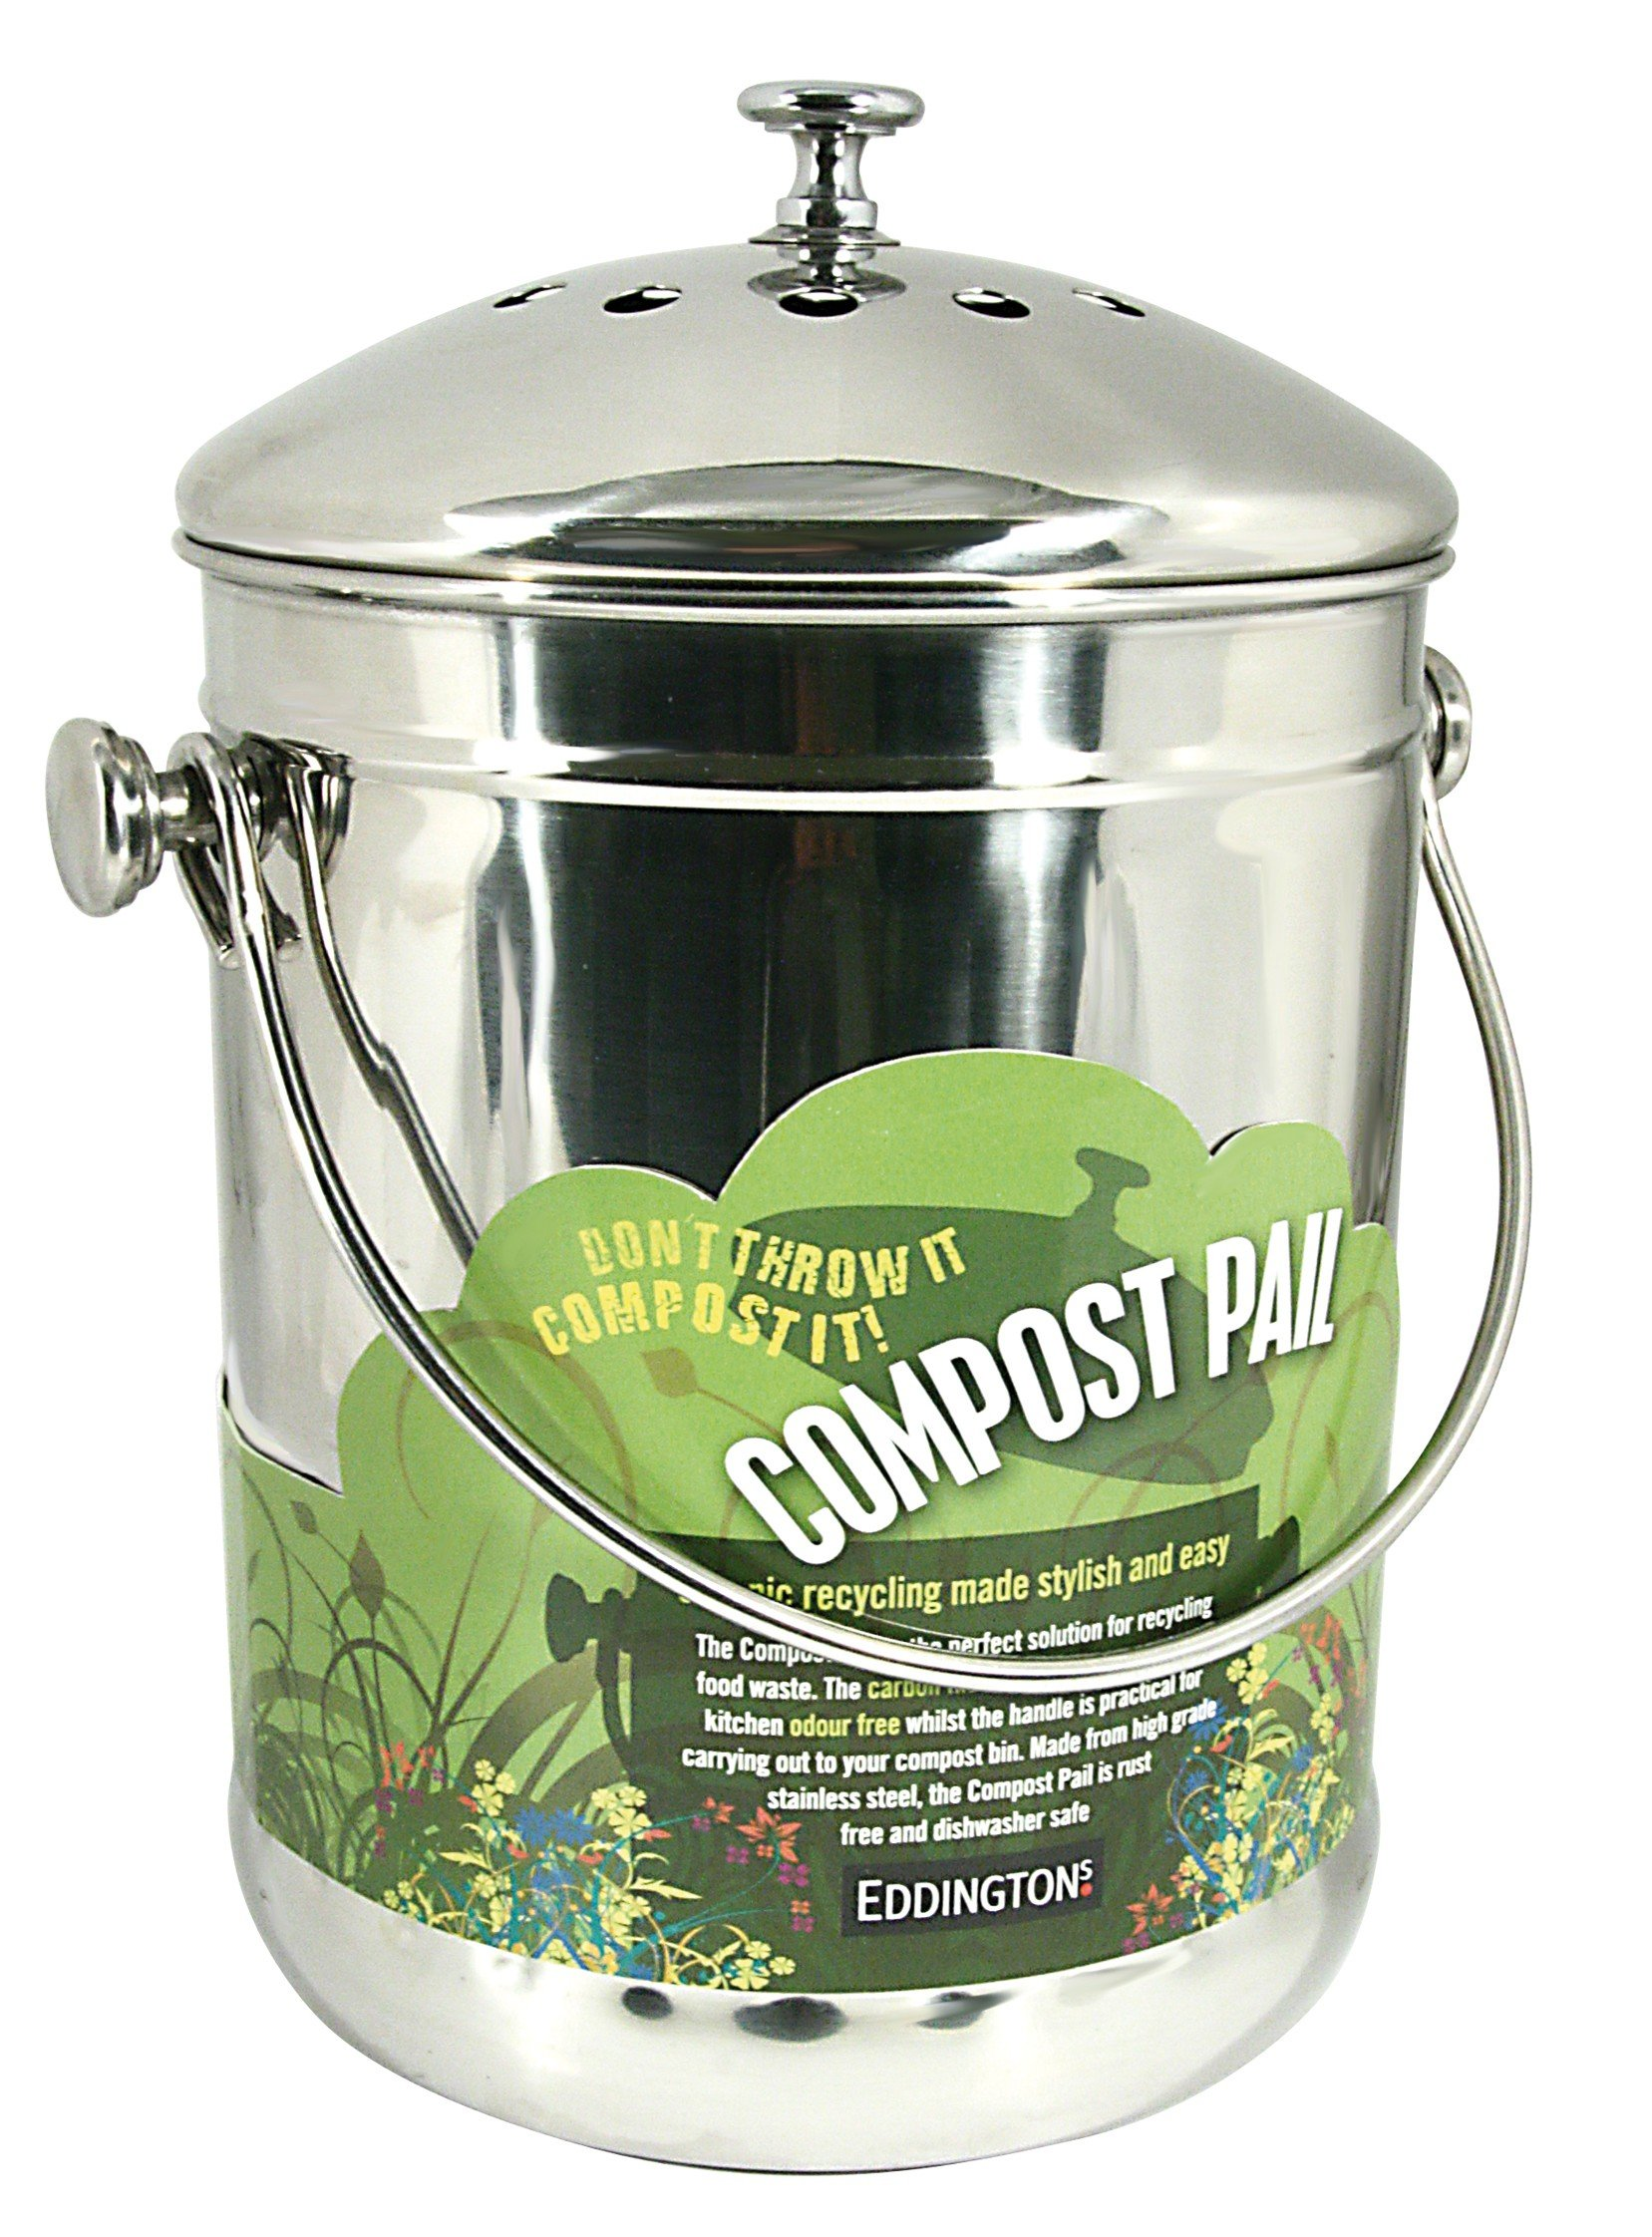 Eddingtons Compost Pail, Stainless Steel